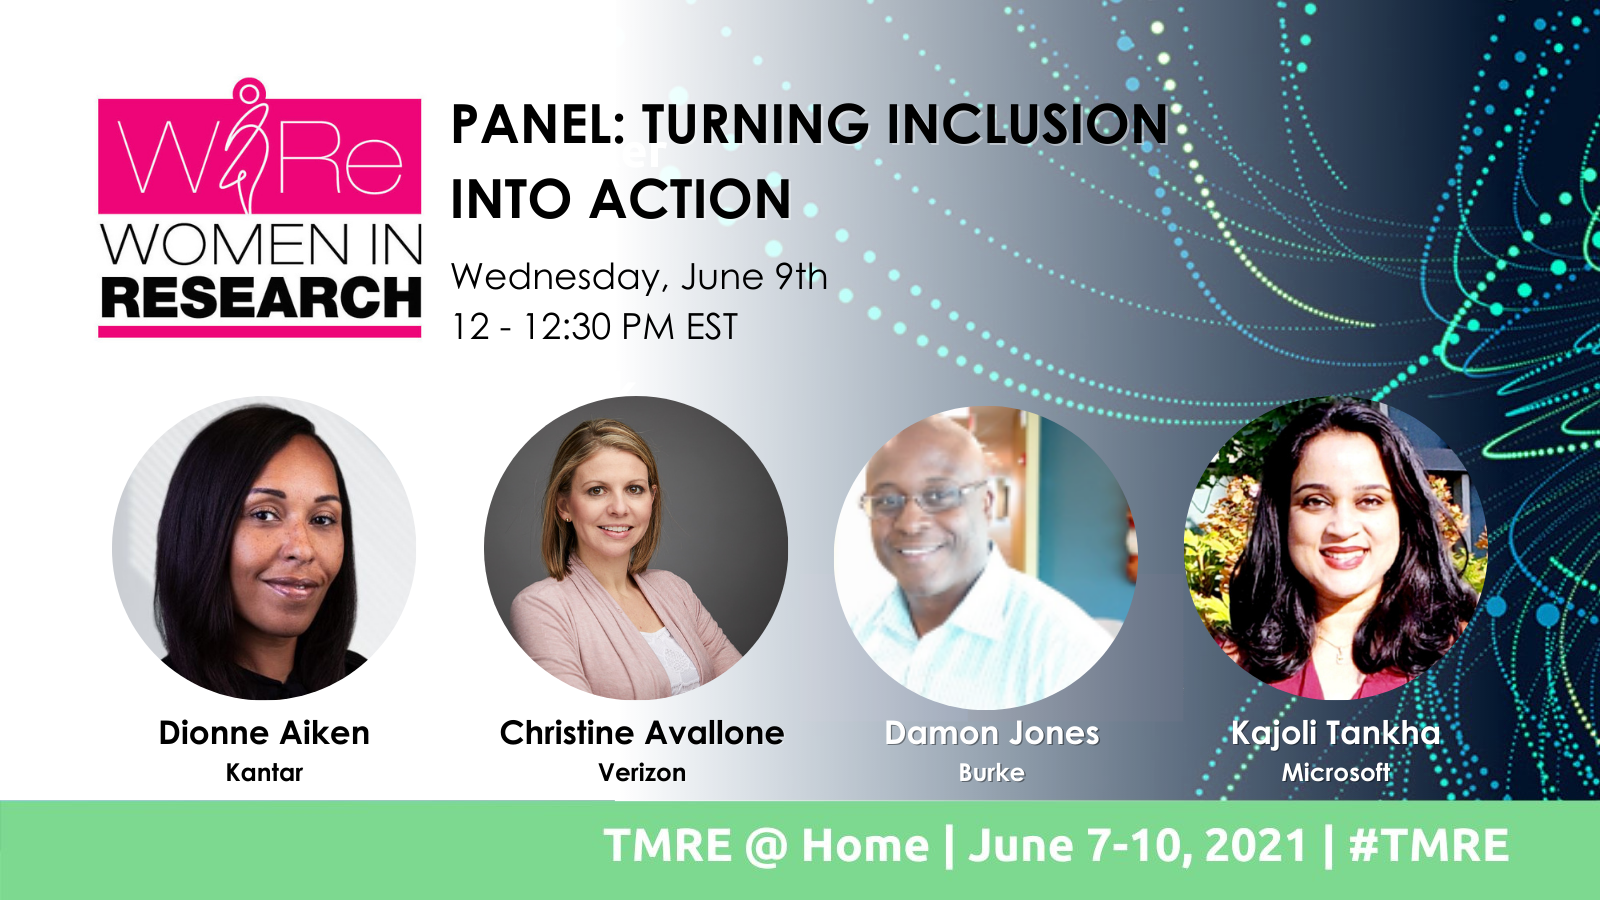 TMRE @ Home: Turning Inclusion into Action